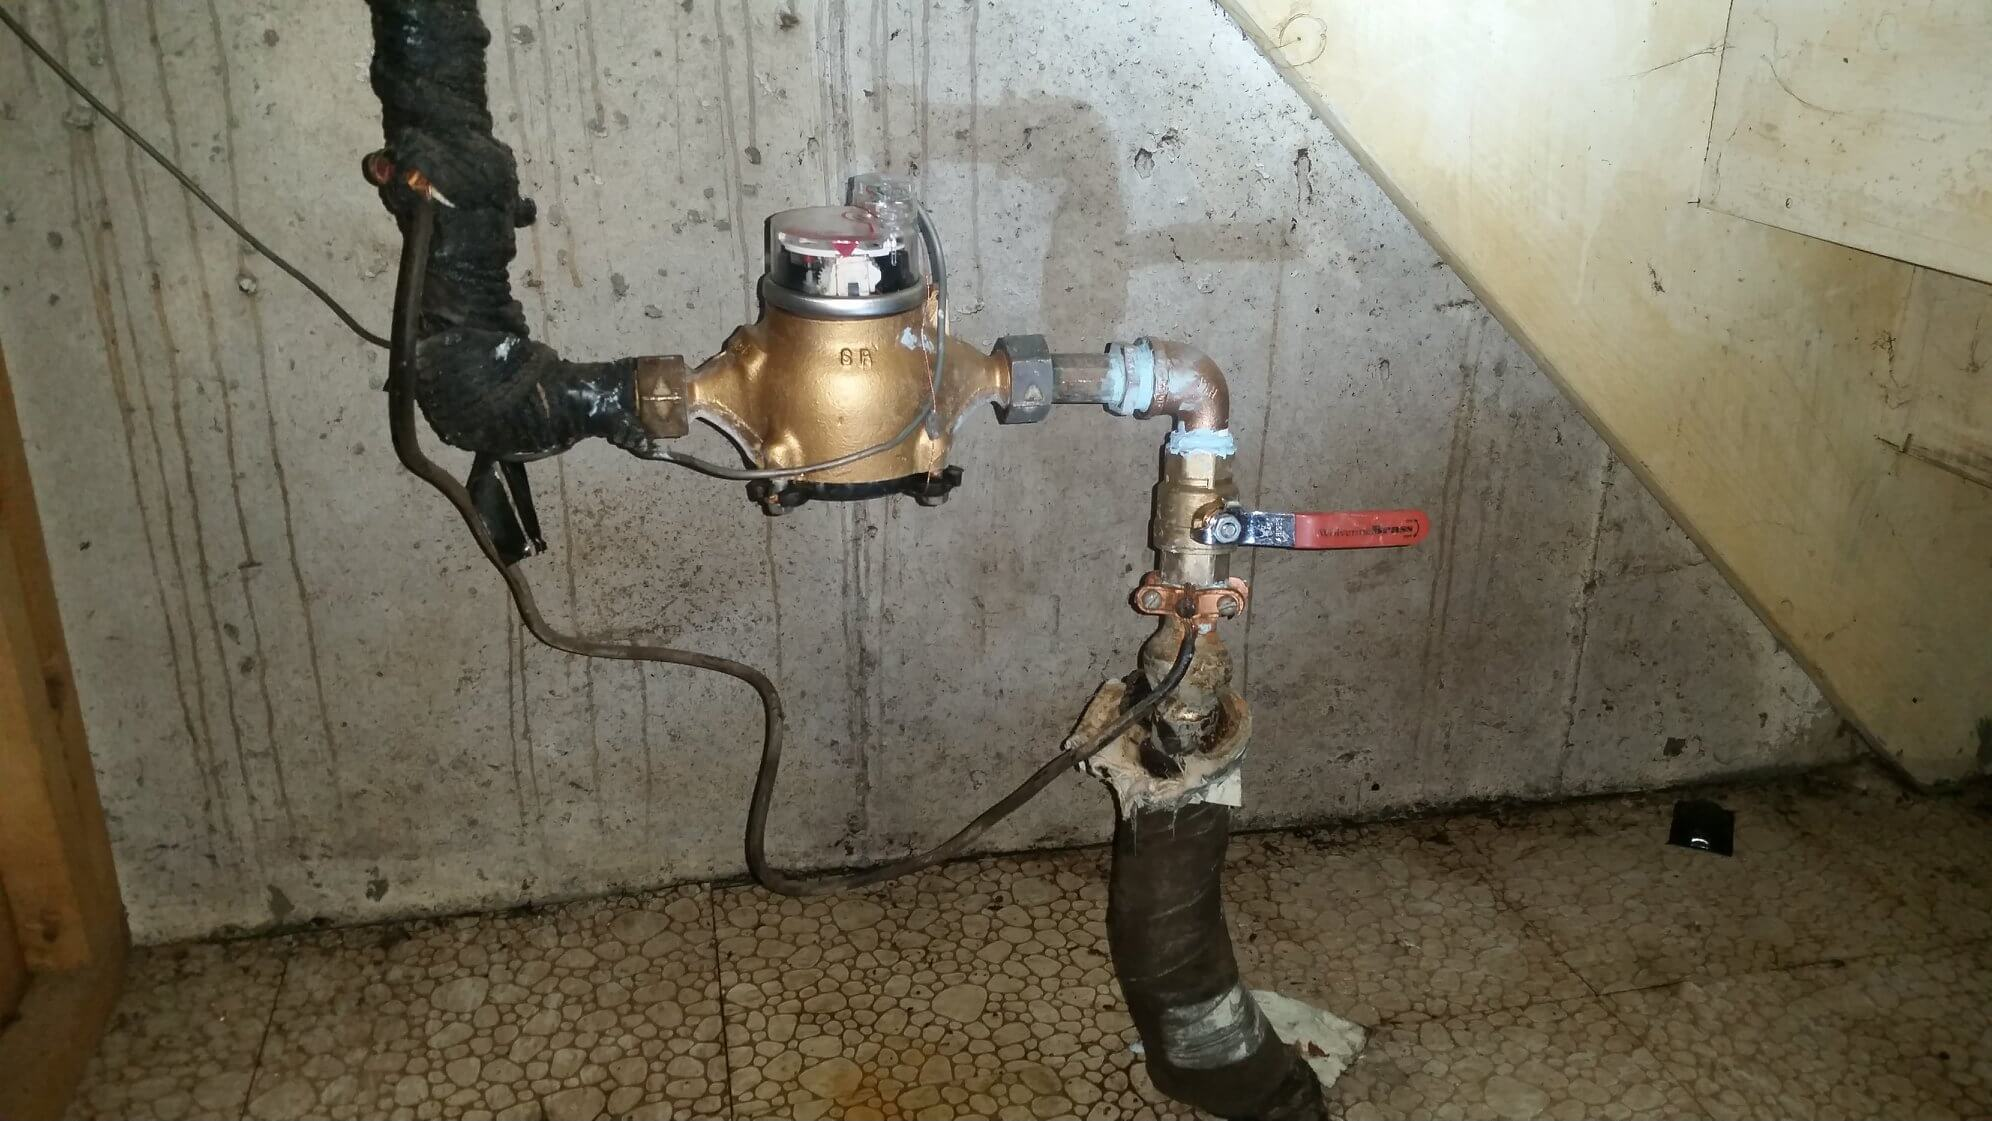 Here's what a typical main water shut-off valve looks like